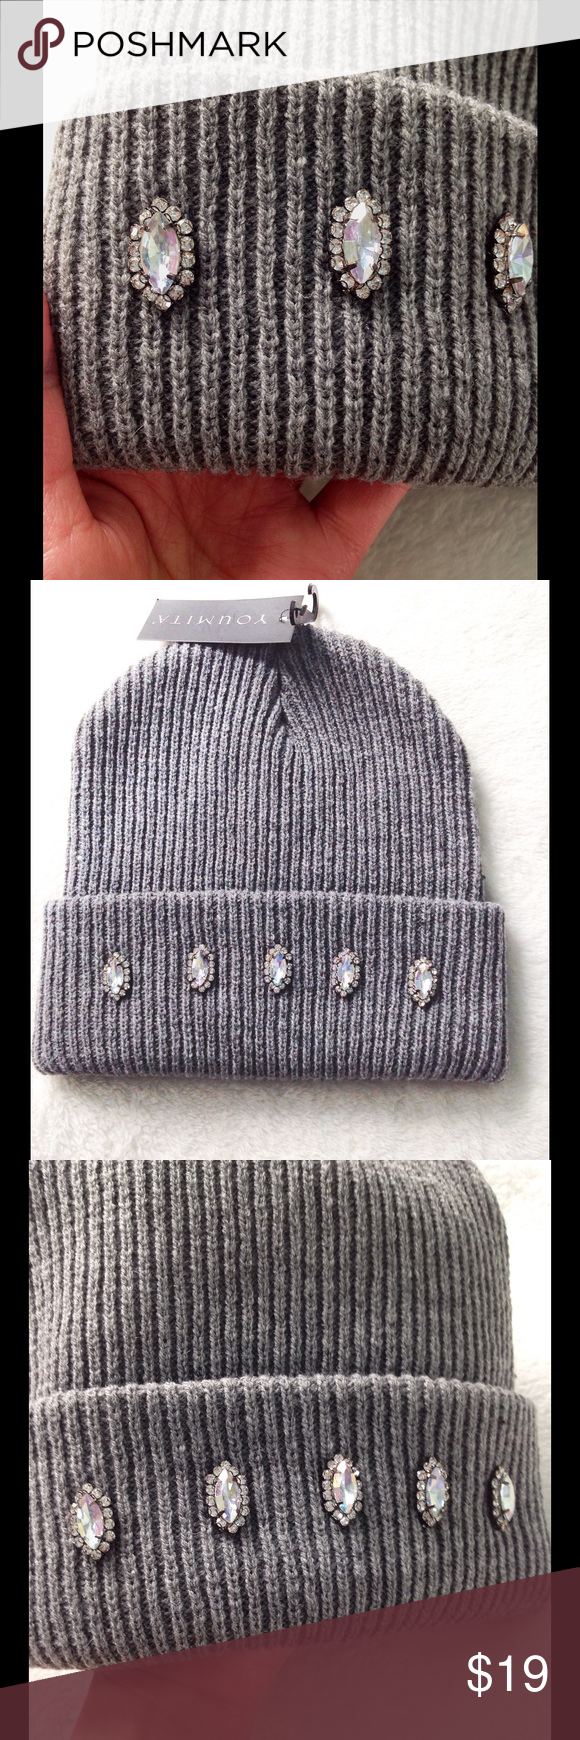 5ed8b127a20 rhinestones beanie🌈🌈🌈 rhinestones beanie diamond shape rhinestones🌈🌈💕💕💎💎  new never use with tag😊😊 one of a kind 🌷🌷 sephora Accessories Hats